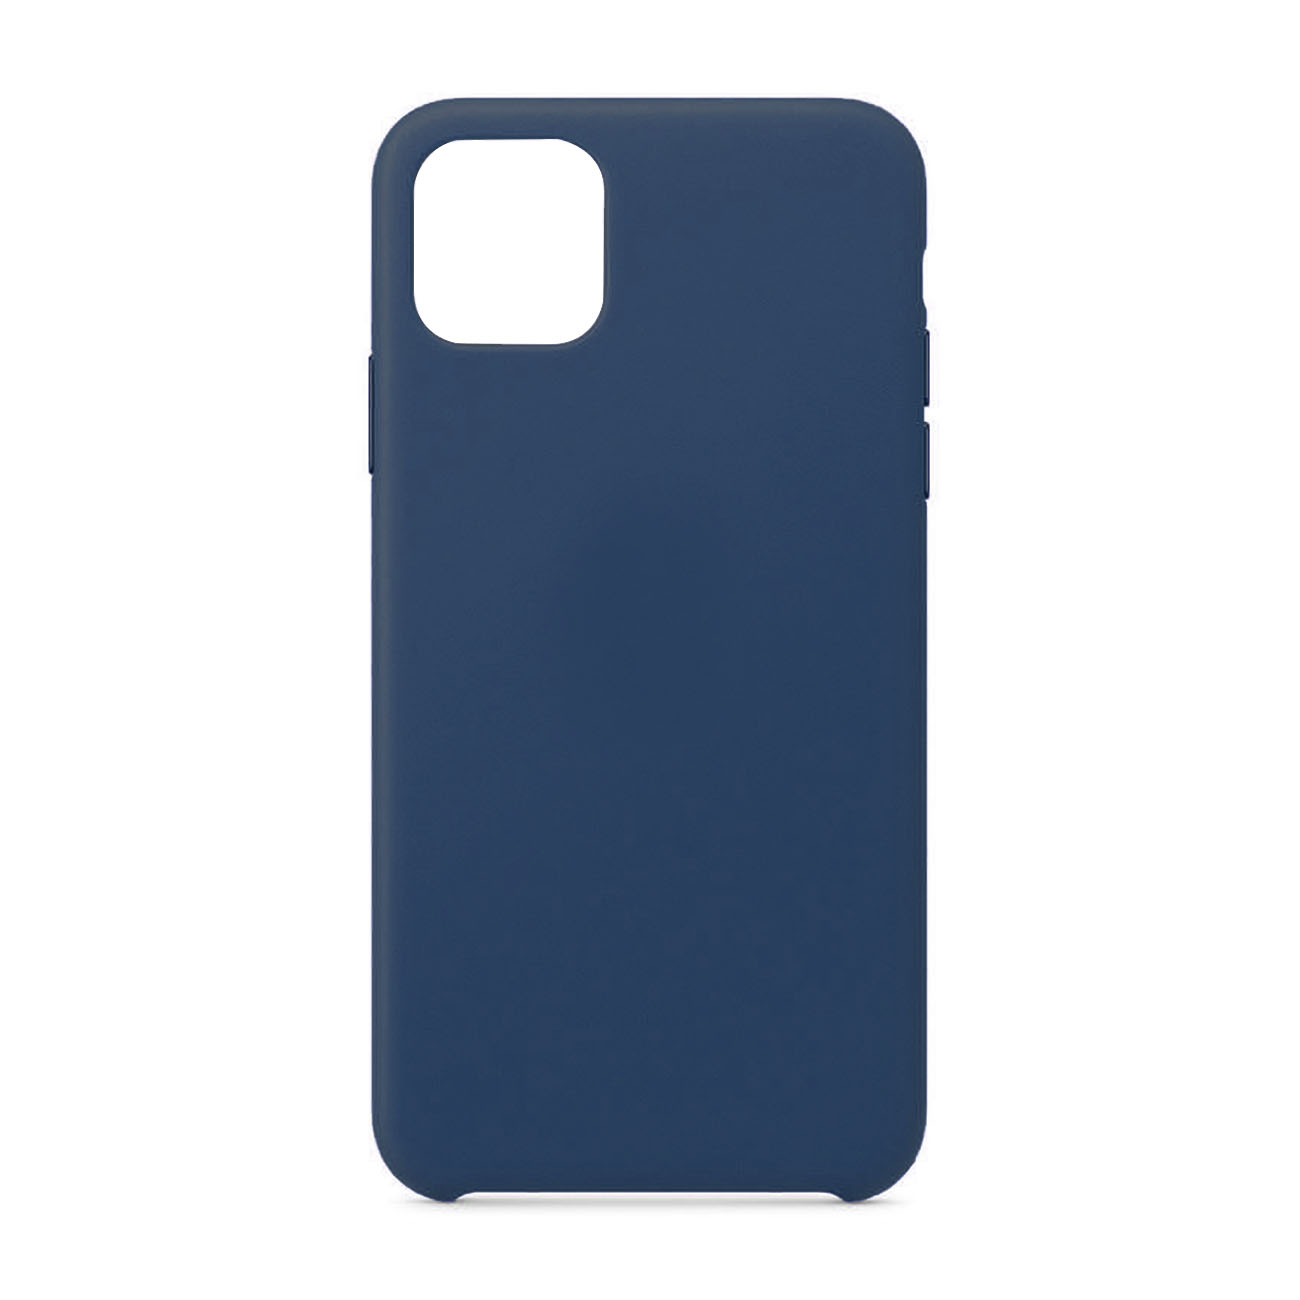 Reiko Apple iPhone 11 Gummy Cases In Navy